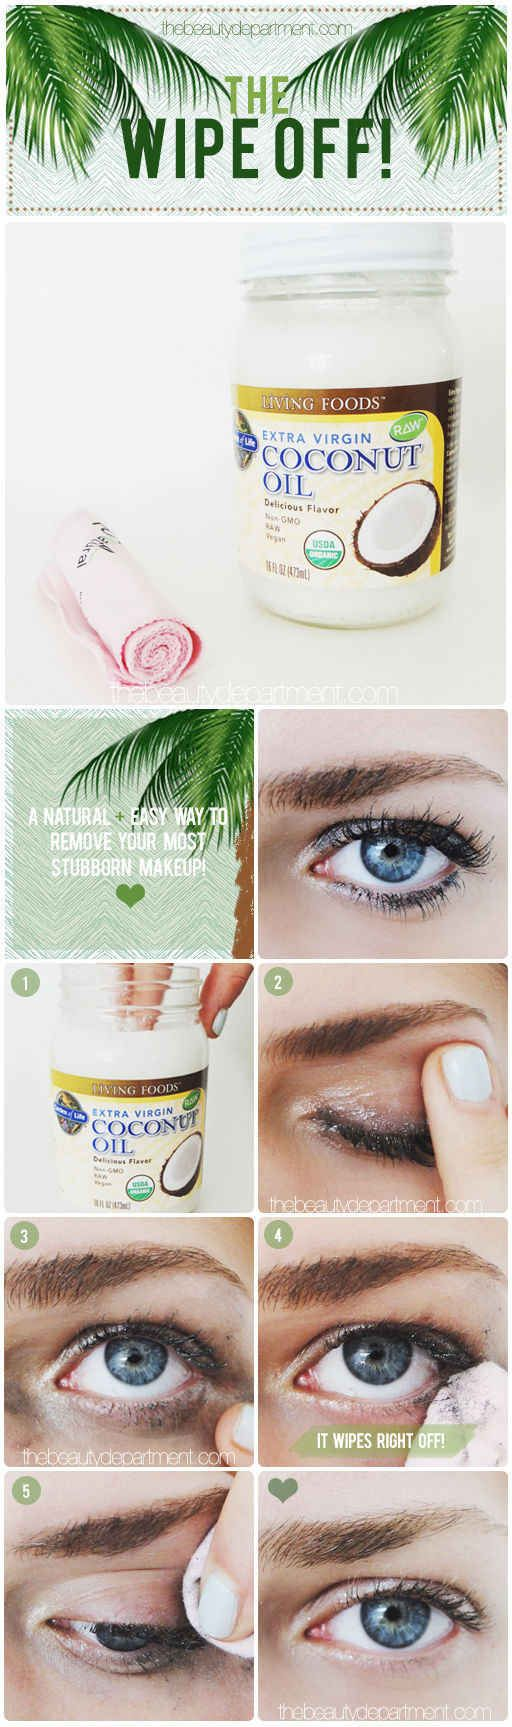 "I use Coconut Oil to remove my eye Make-Up every day! Gentle, Nourishing, Natural, Quick, Easy, Effective & Fragrant...it's PERFECT! #CoocooForCoconuts""~ JMMR"